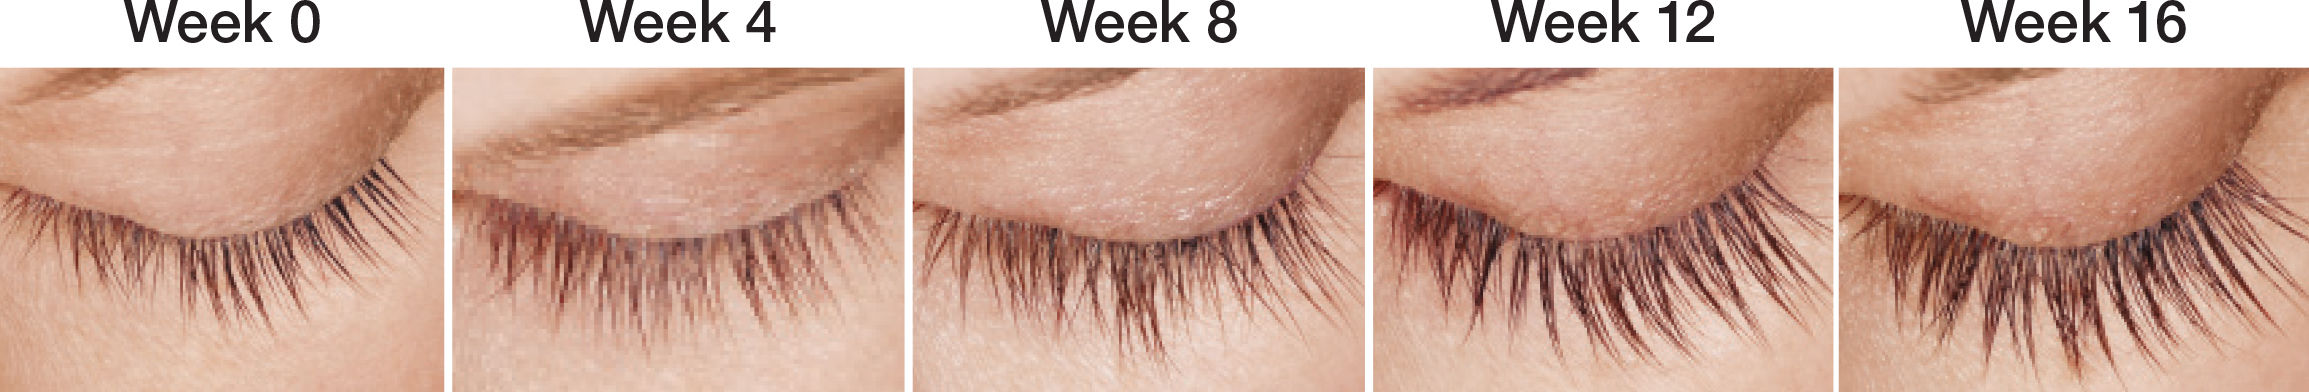 Progression of lashes improving